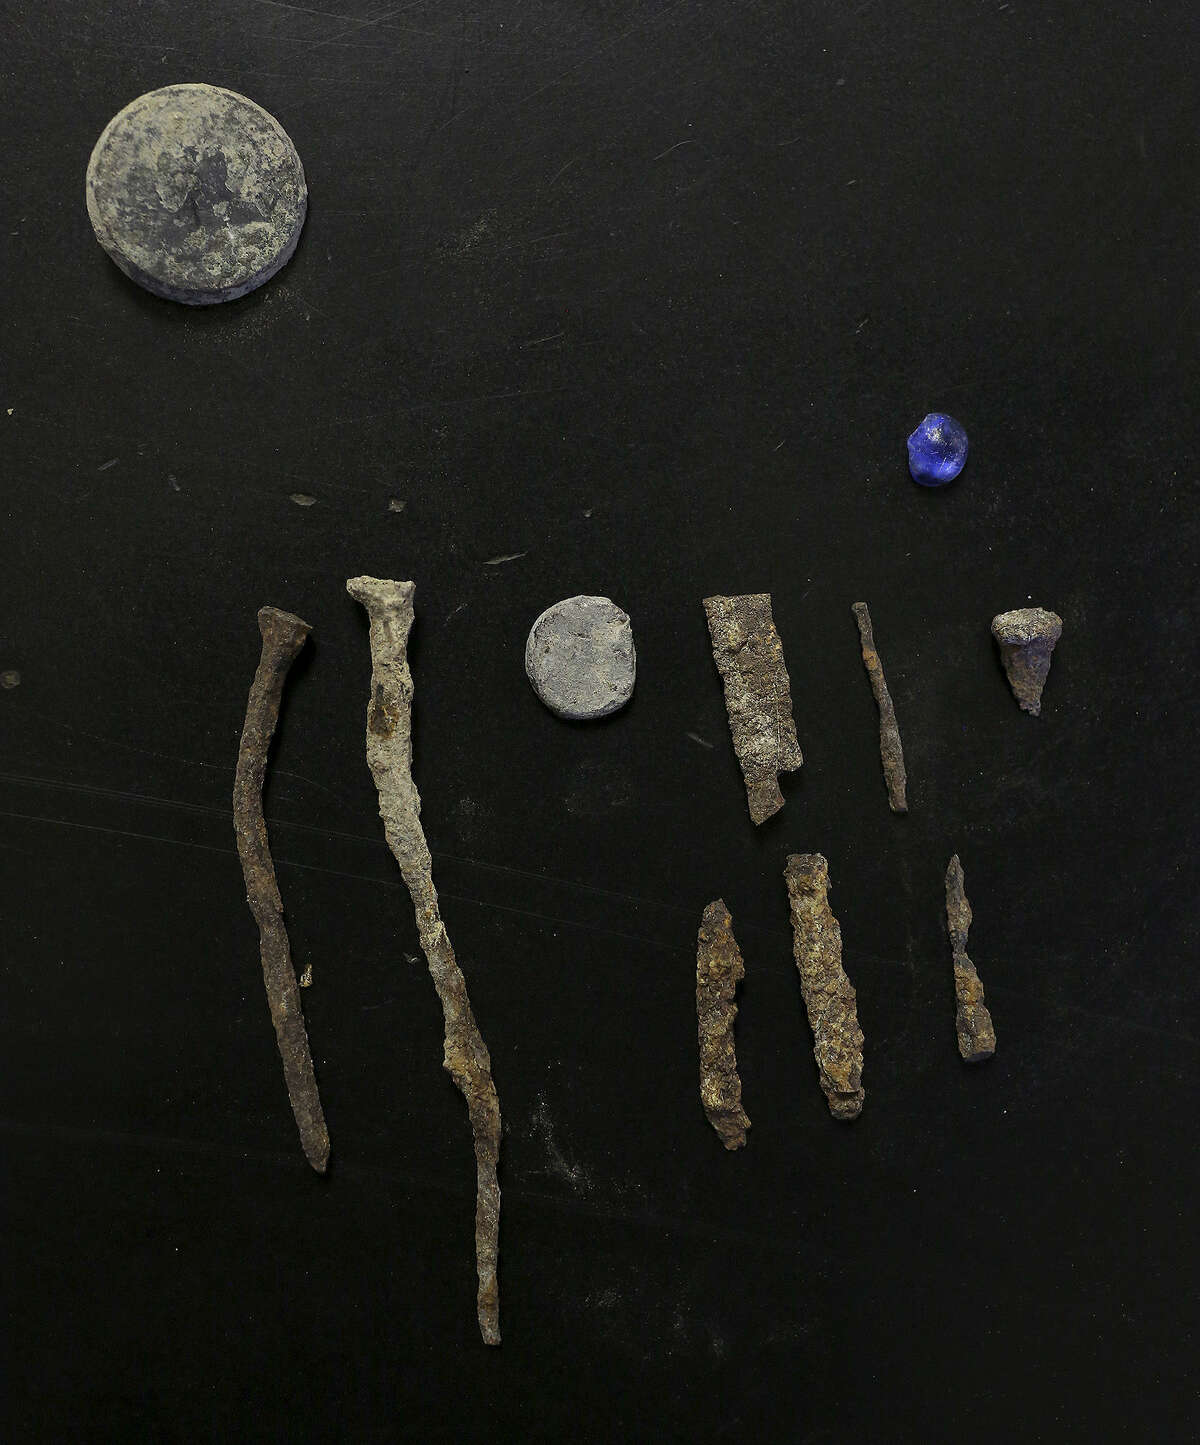 Remnants found at the site suggest a link but don't conclusively tie them to the original mission.